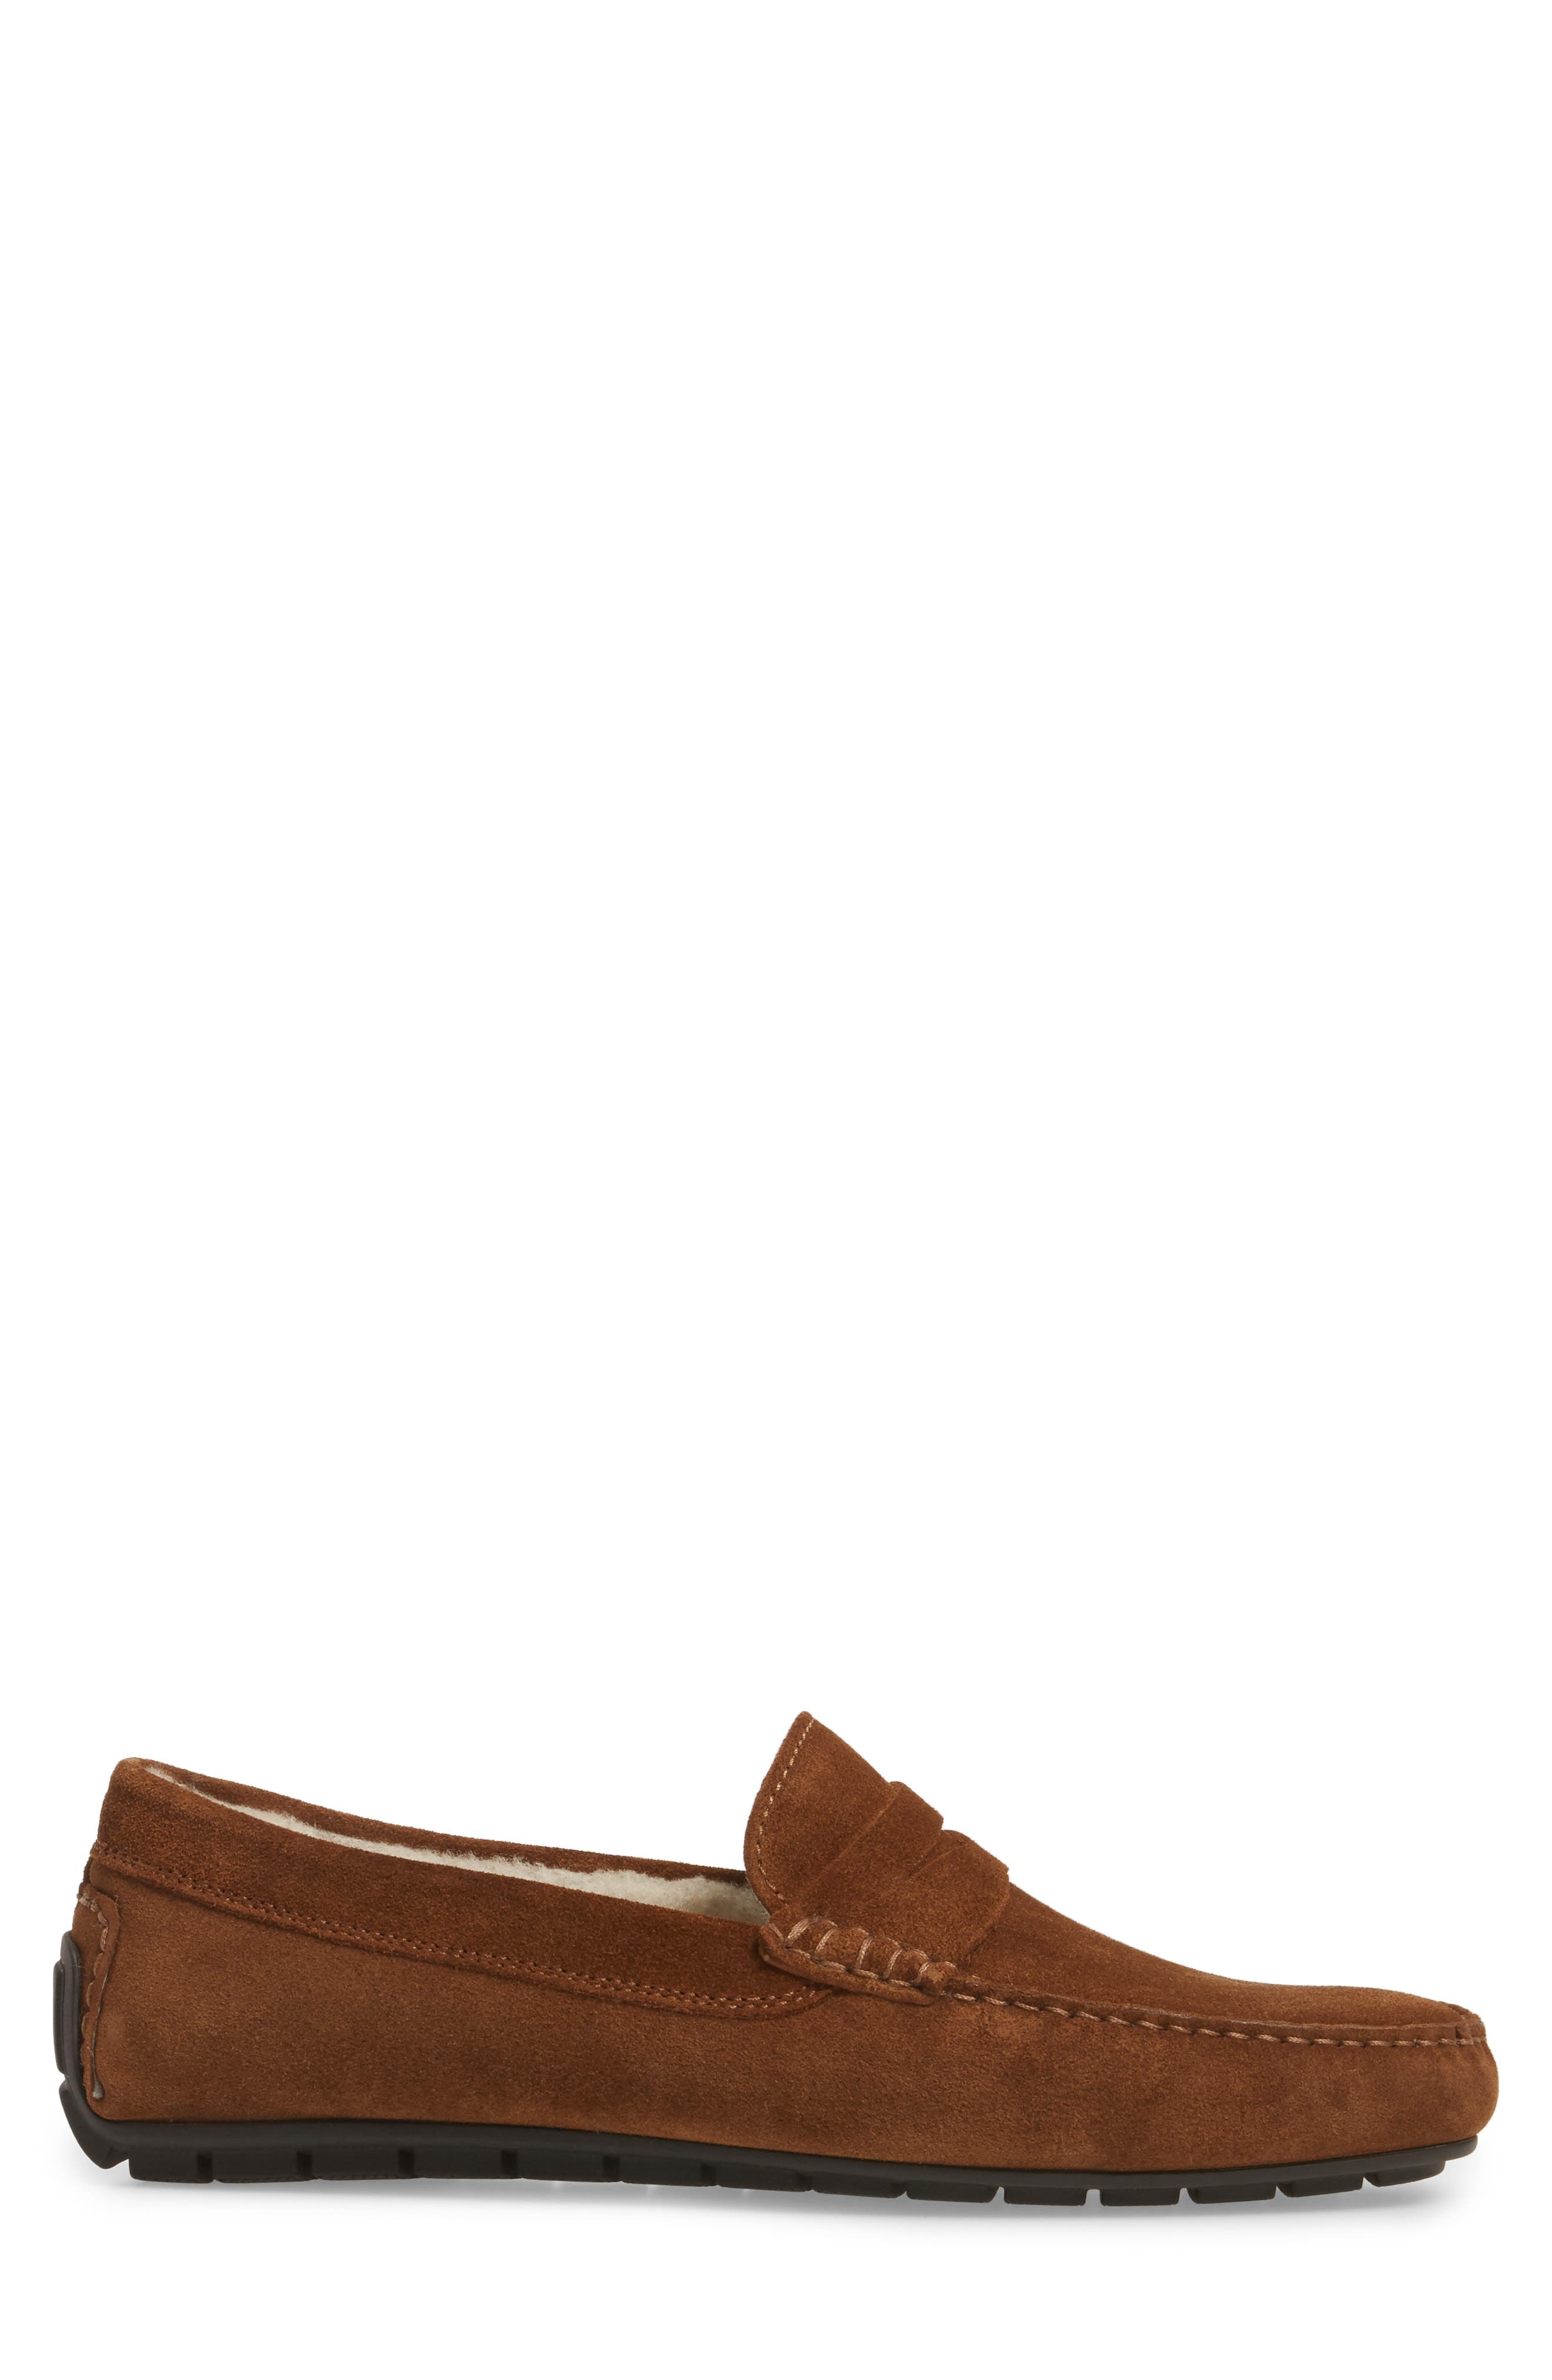 Norse Penny Loafer with Genuine Shearling,                             Alternate thumbnail 3, color,                             Brown/ Brown Suede Leather